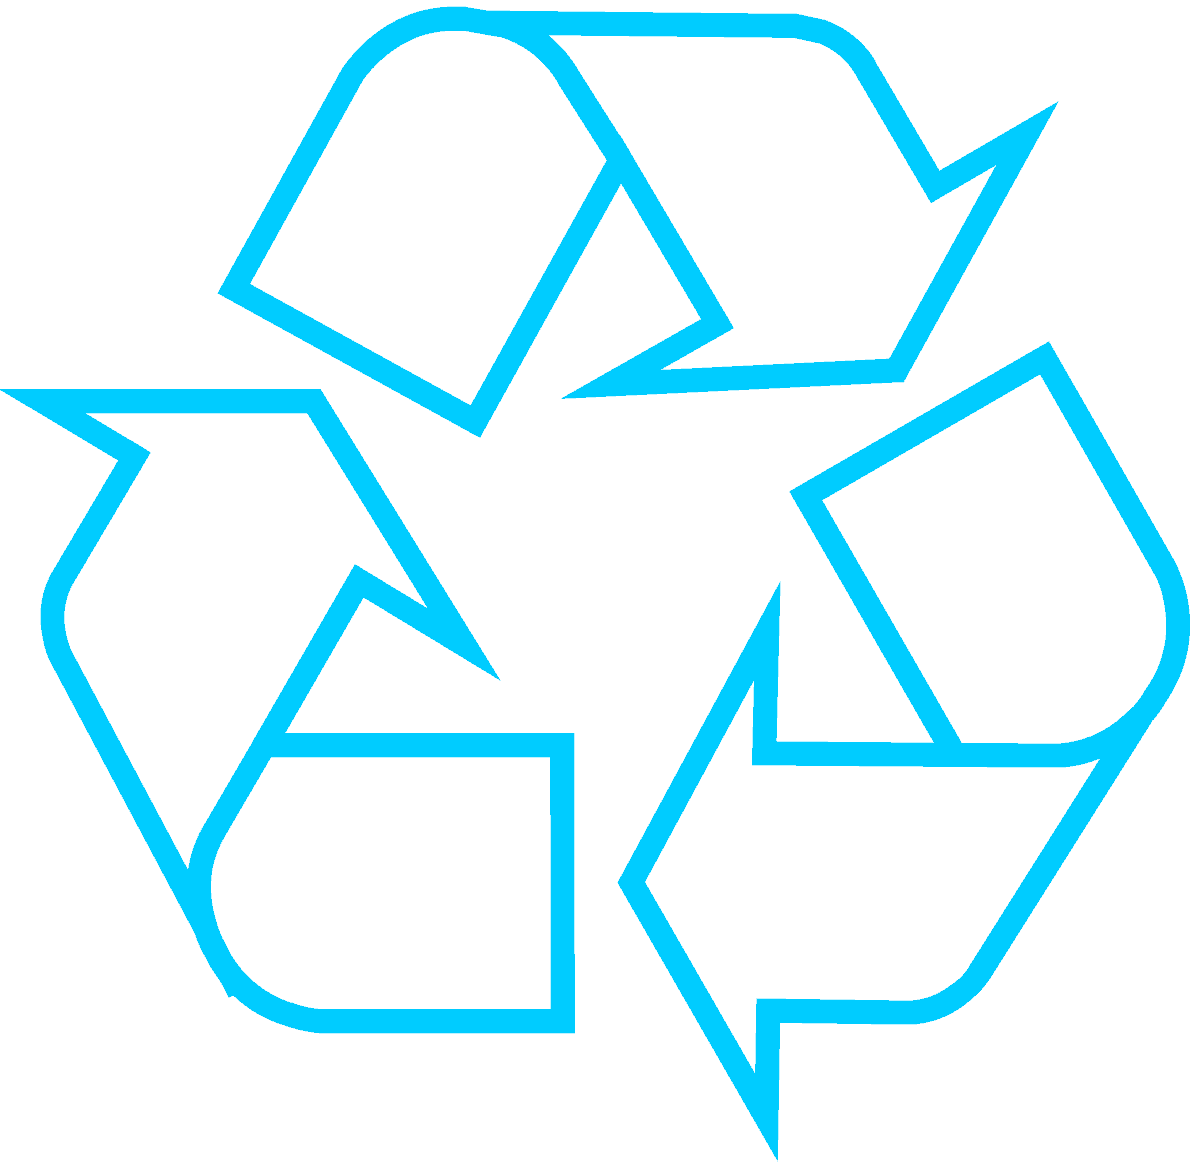 recycling-symbol-icon-outline-light-blue